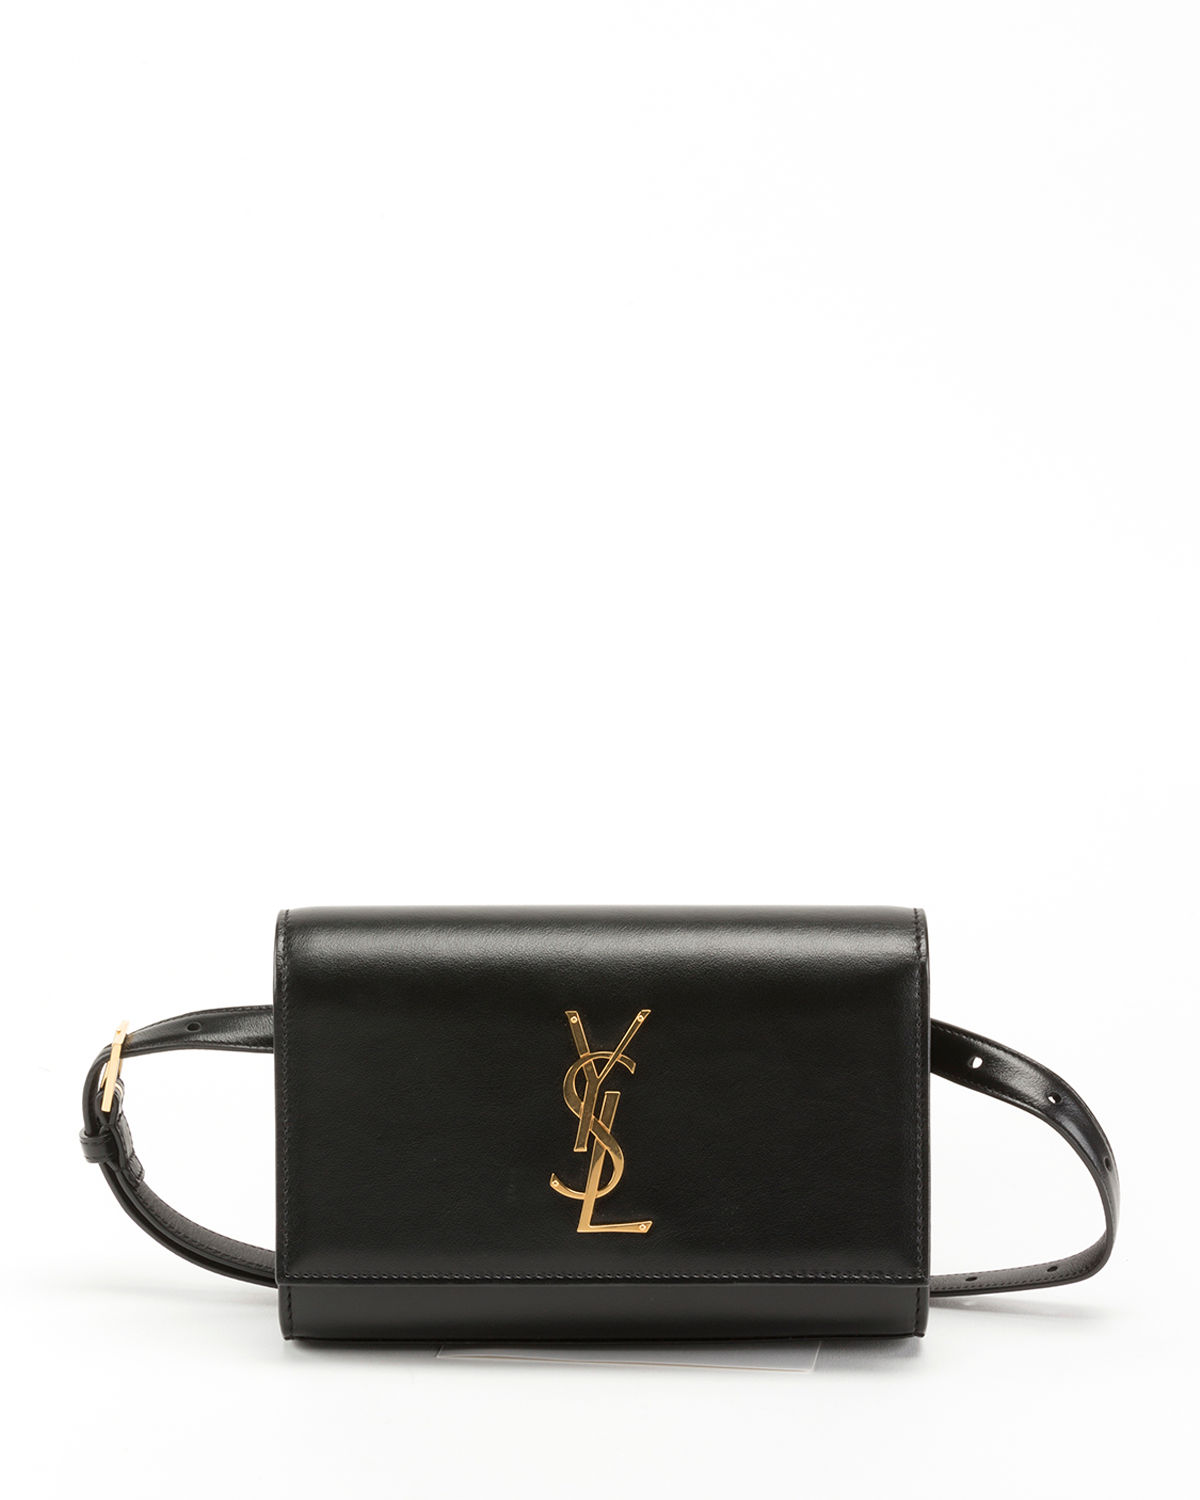 68b93f0f1a Saint Laurent Kate Monogram YSL Leather Belt Bag